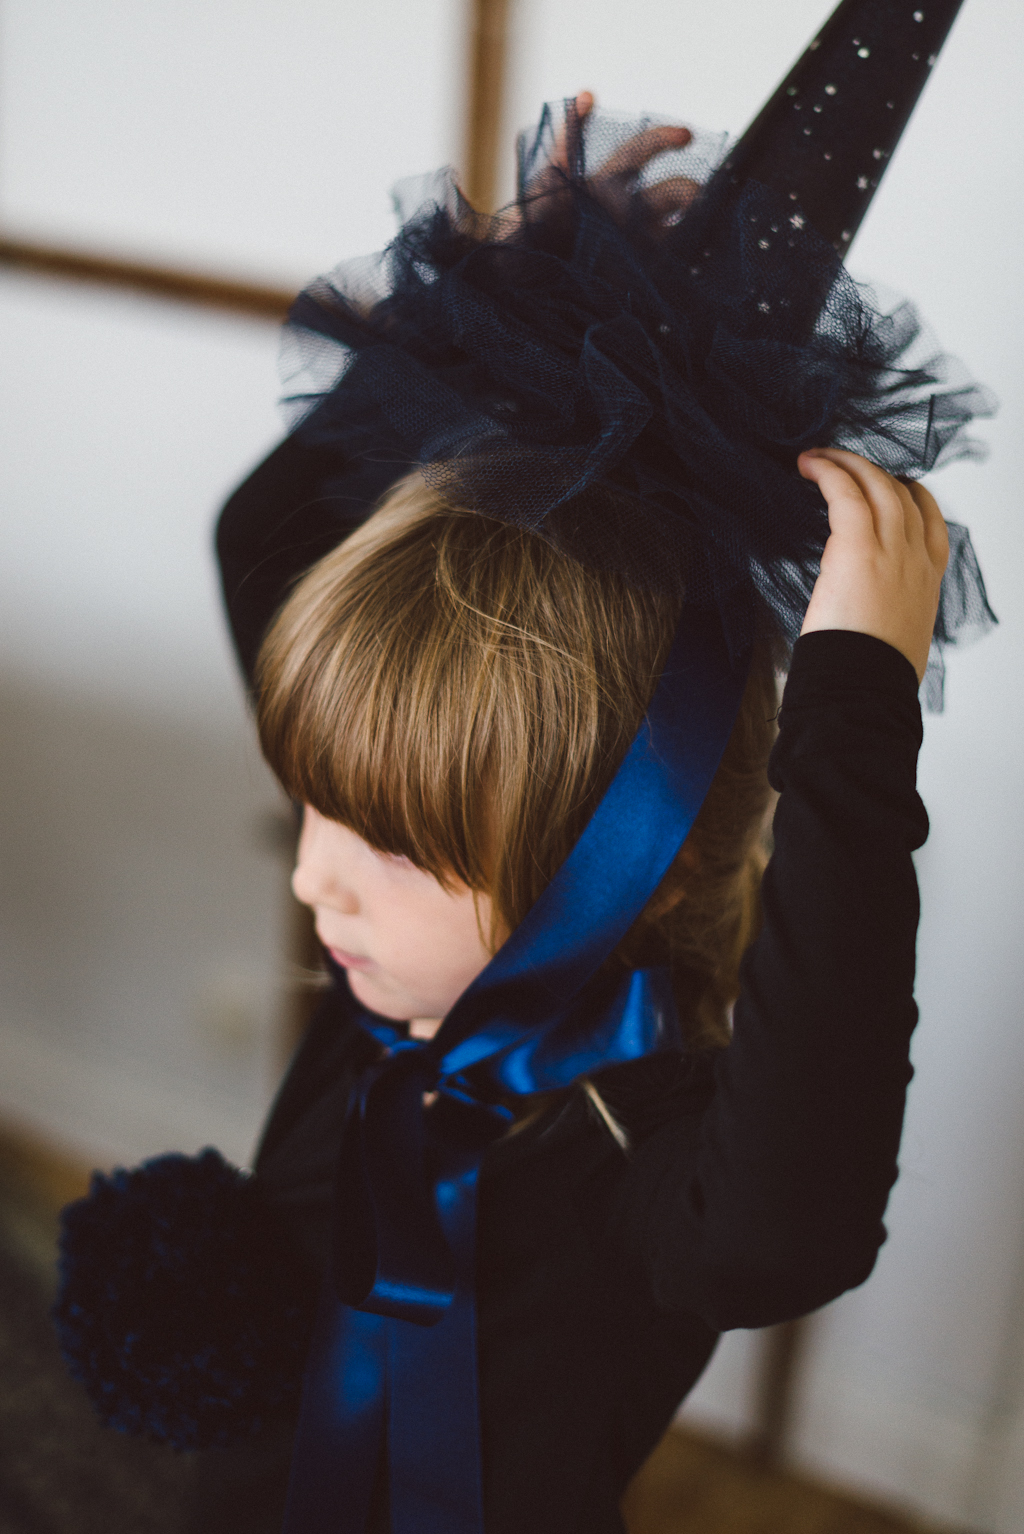 Magical Halloween by Babes in Boyland